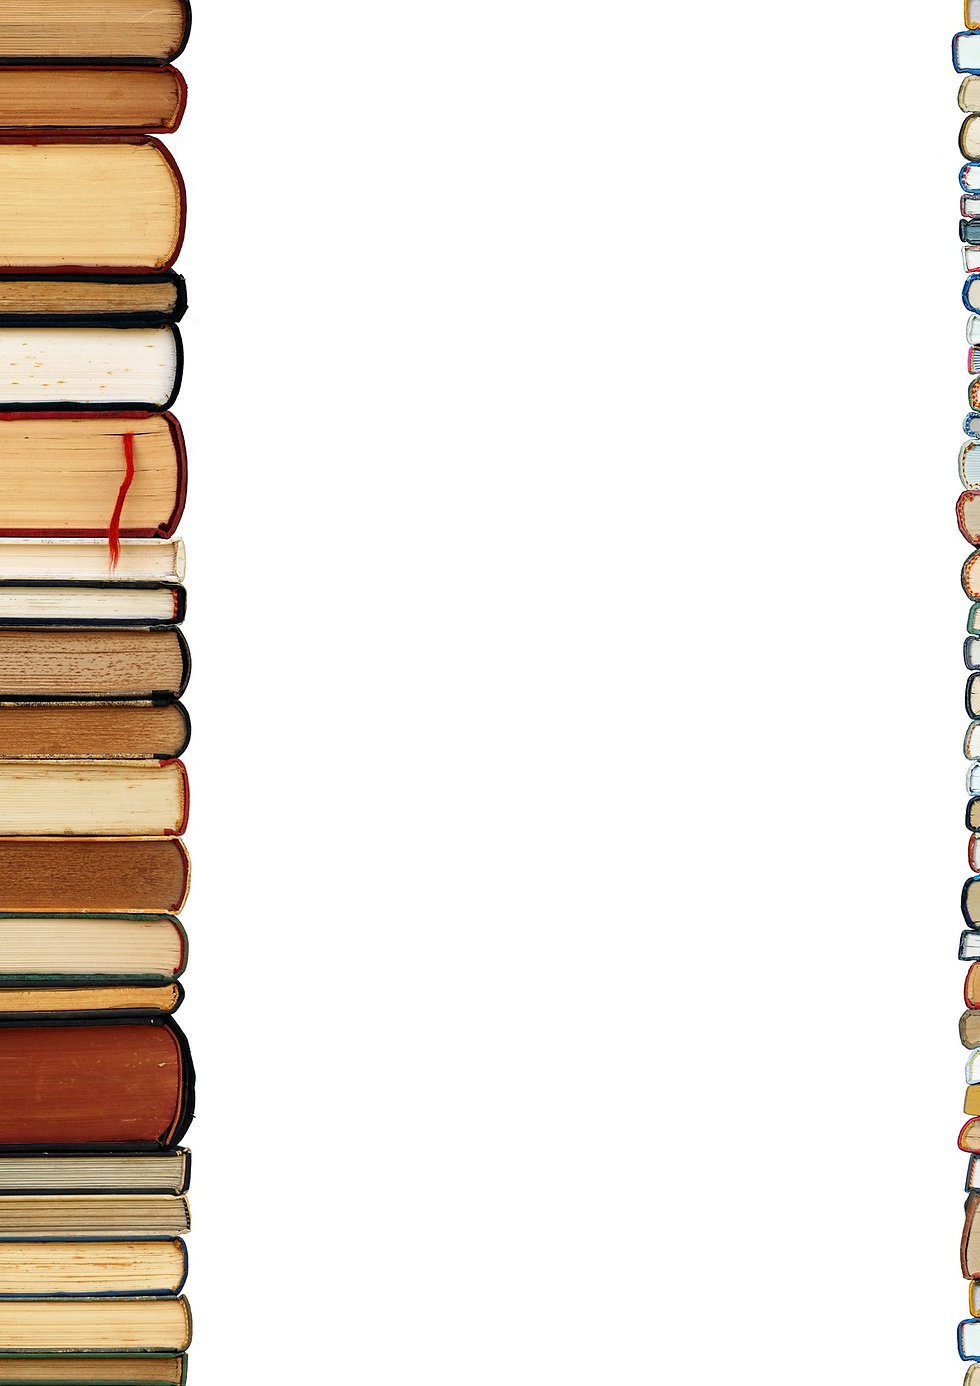 books stacked background cropped